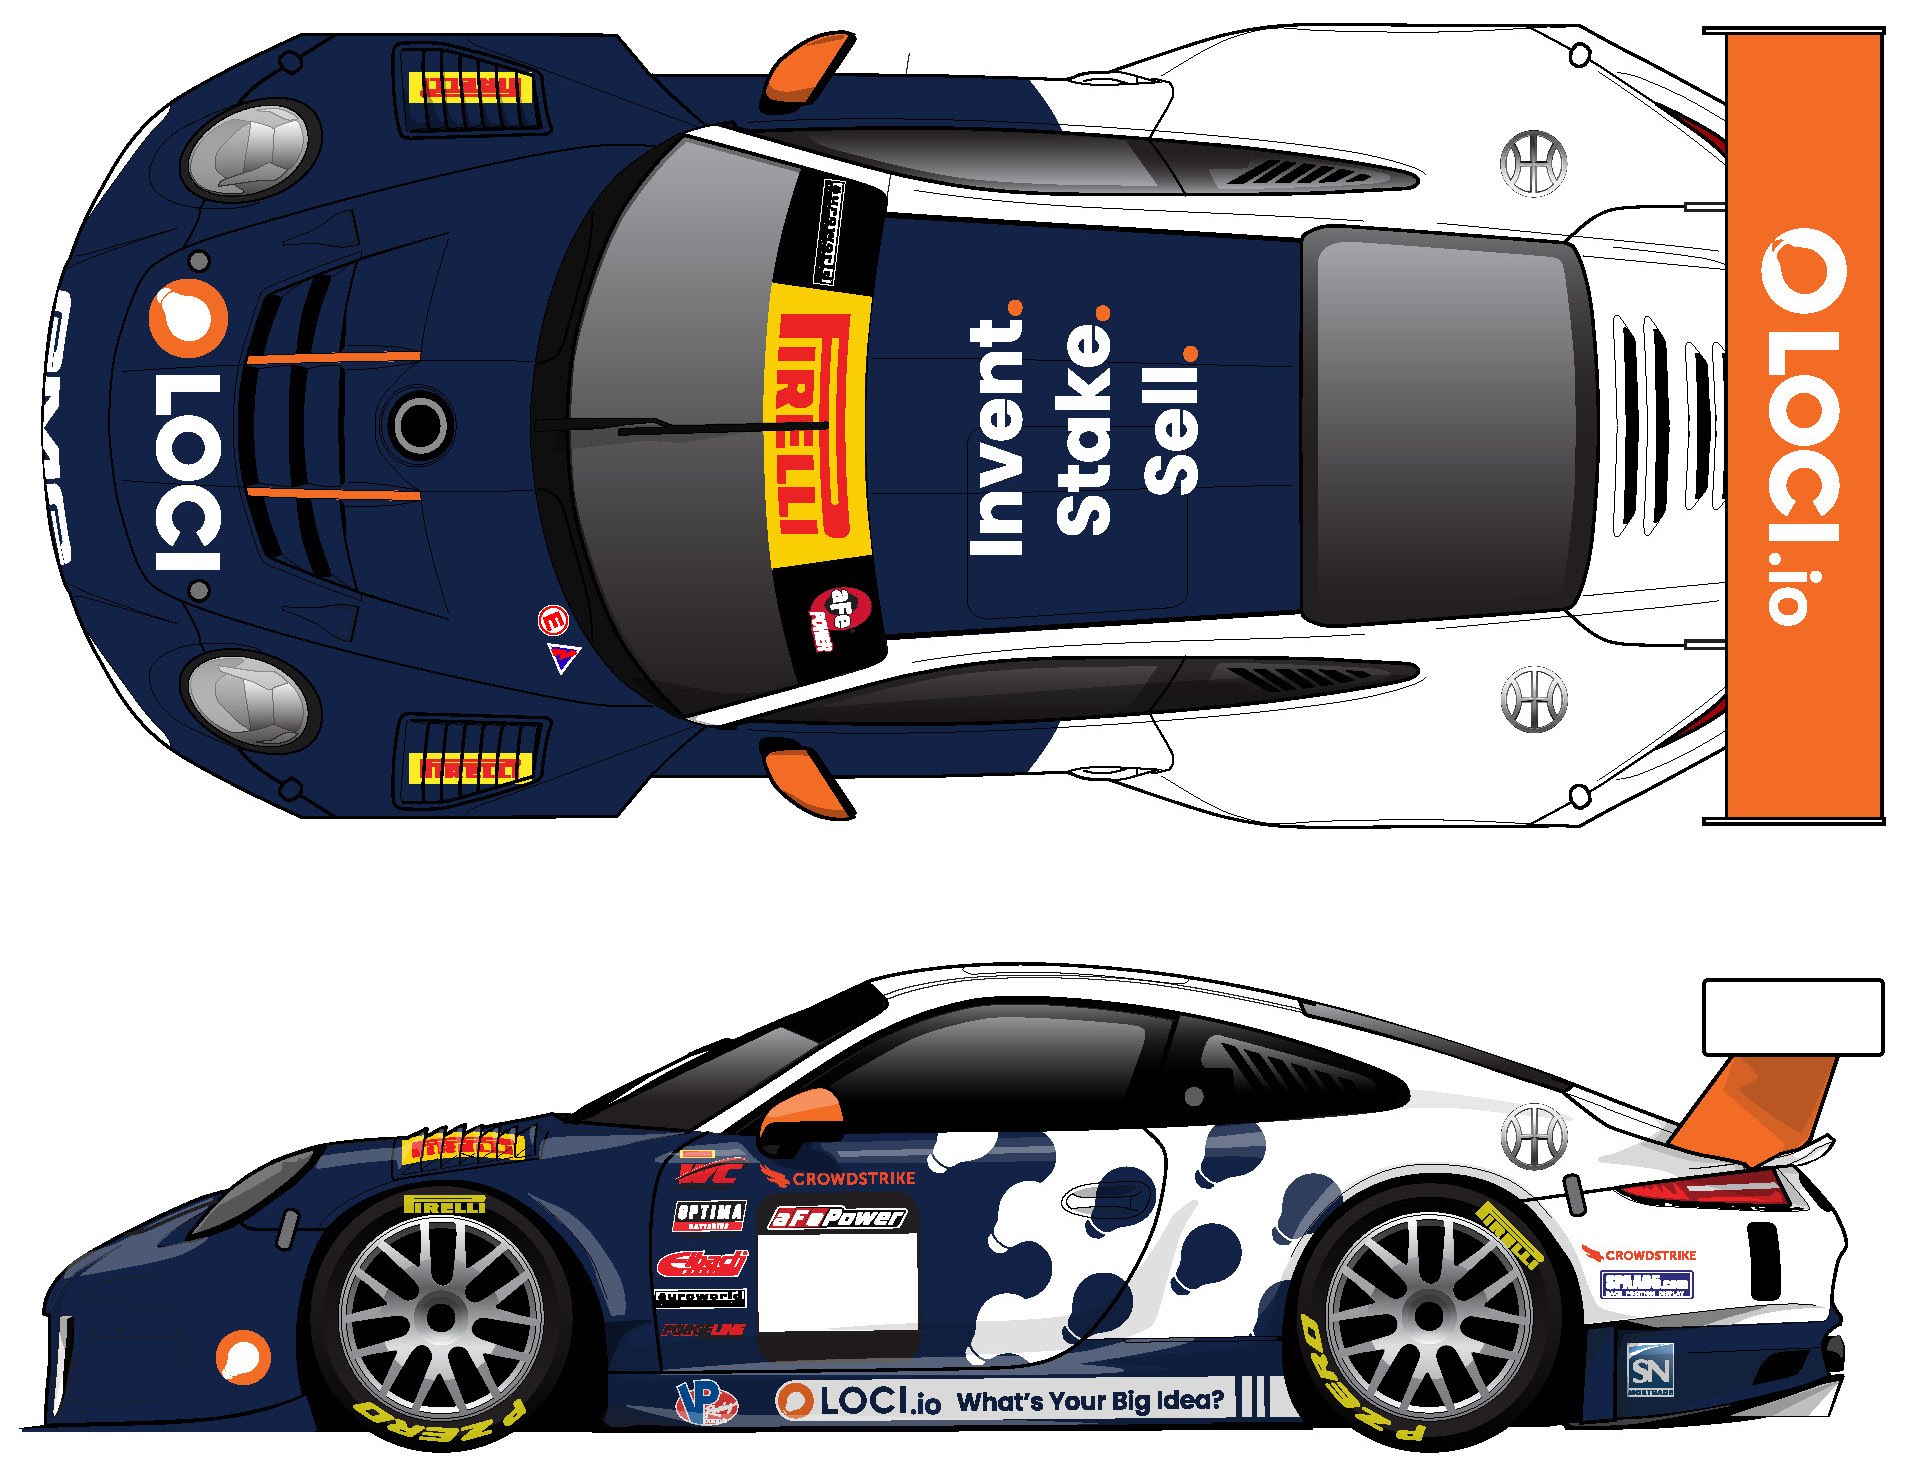 Alec will be sporting a new livery on the GMG-prepped Porsche 911 GT3 R through his partnership with Loci.